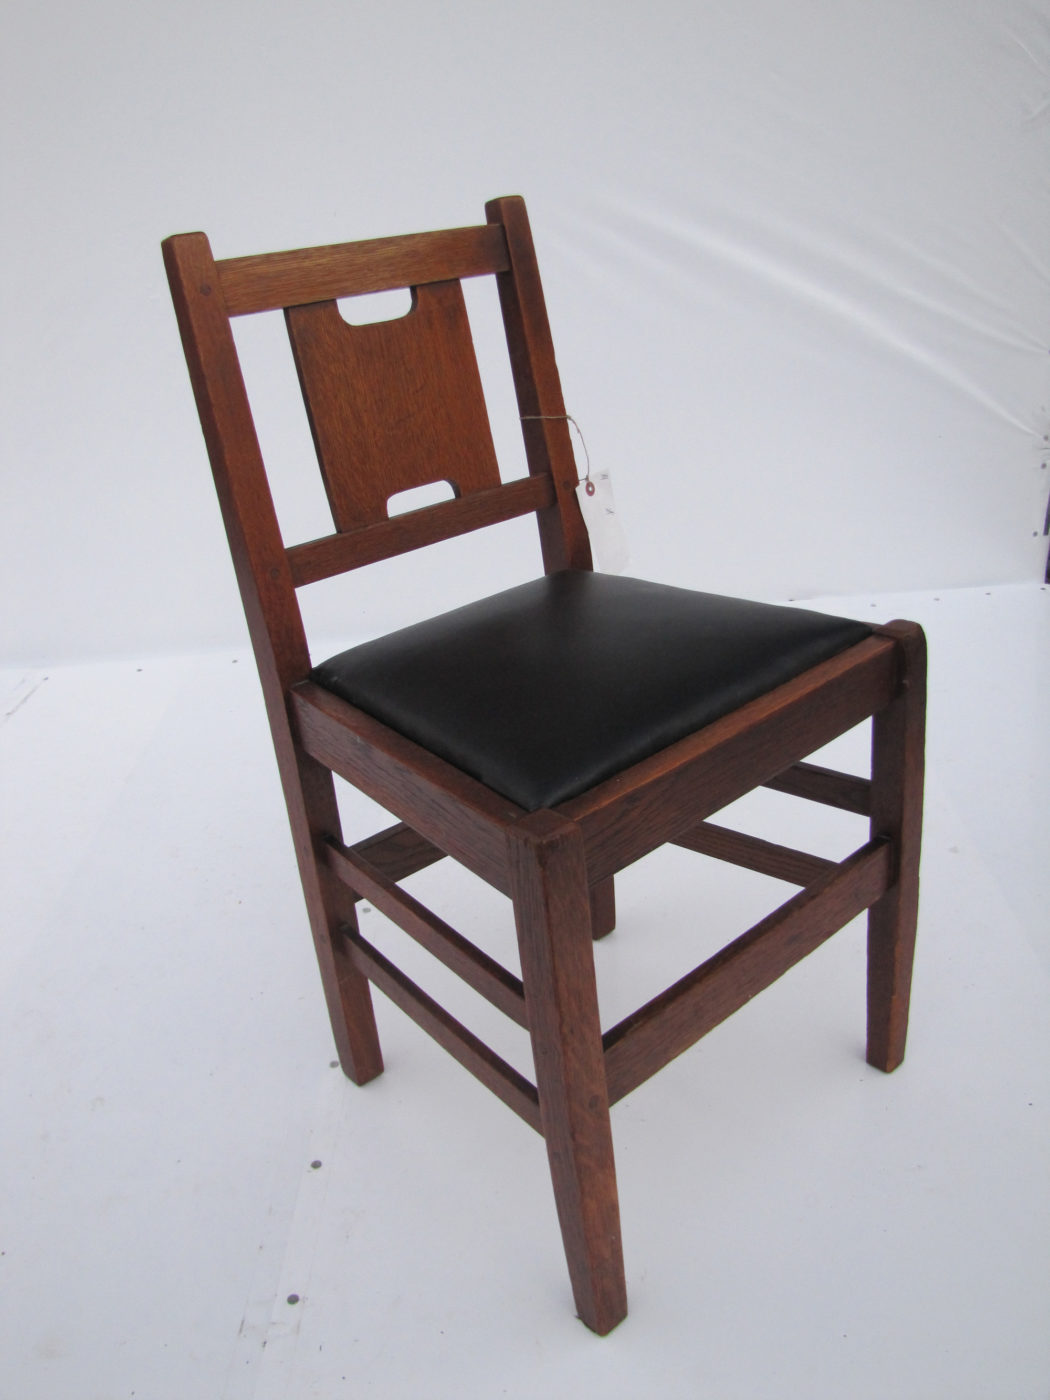 Home » Shop » Antique Furniture » Chairs » Great Looking Small H Back  Gustave Stickley Chair W4092